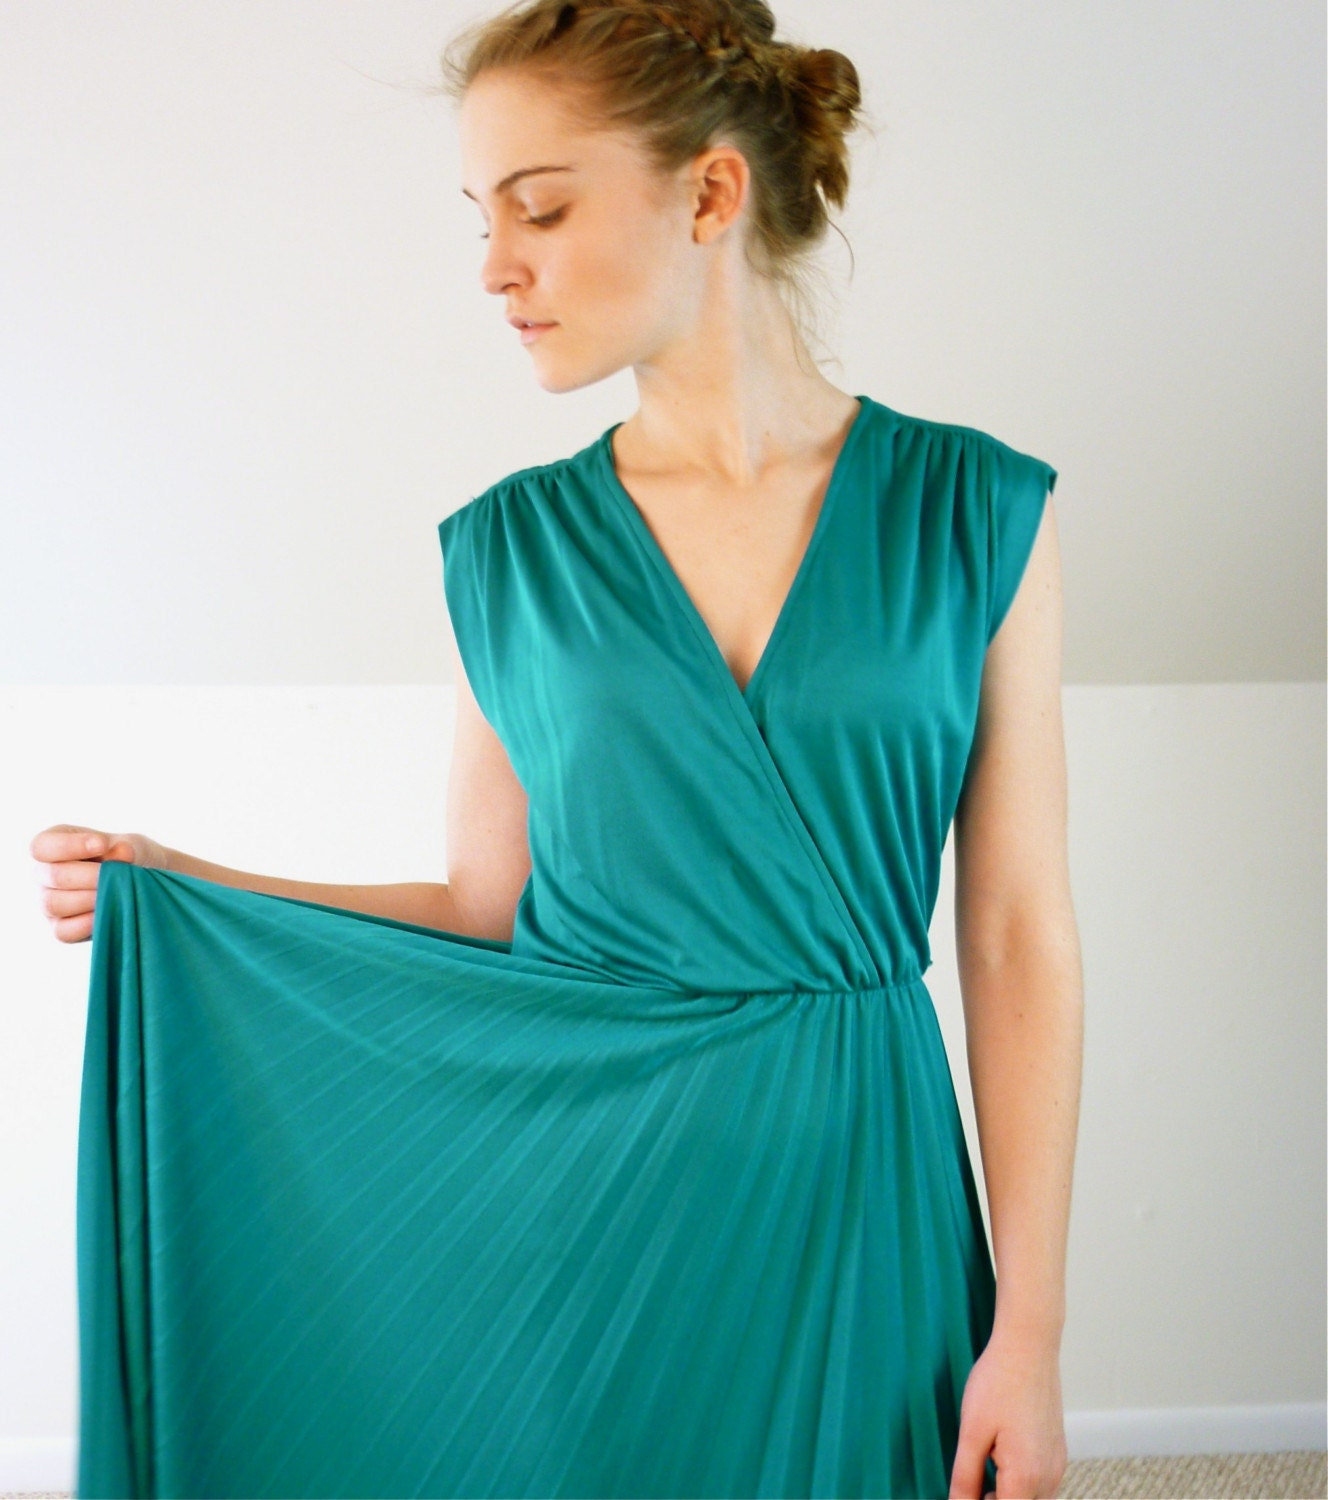 Teal Blue Accordion Pleated Dress, $58